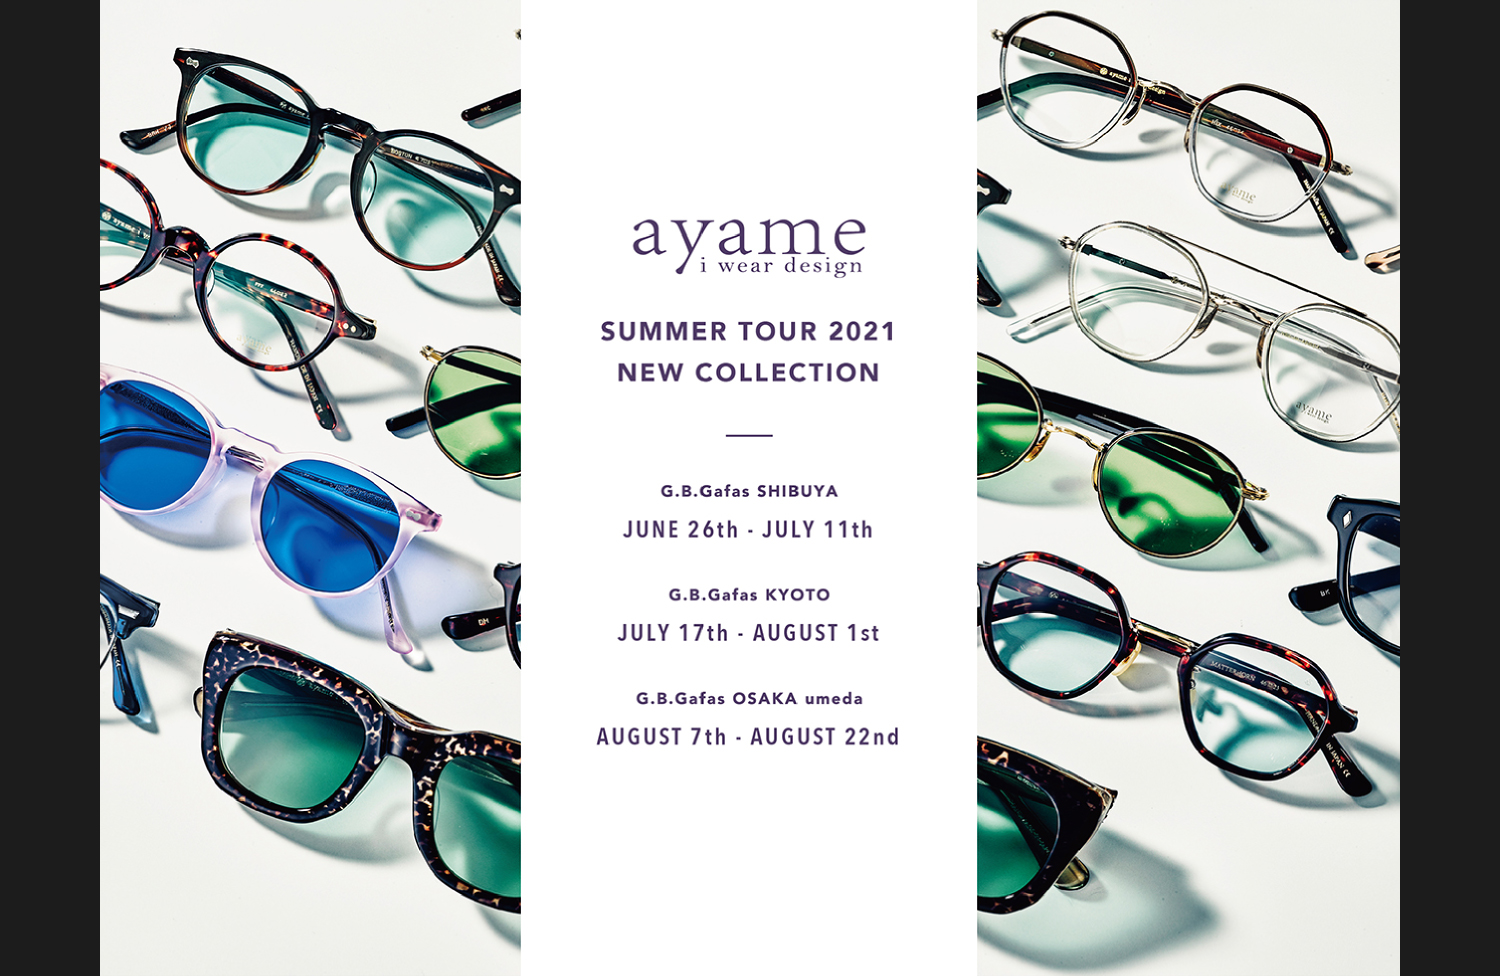 ayame SUMMER TOUR 2021 NEW COLLECTION